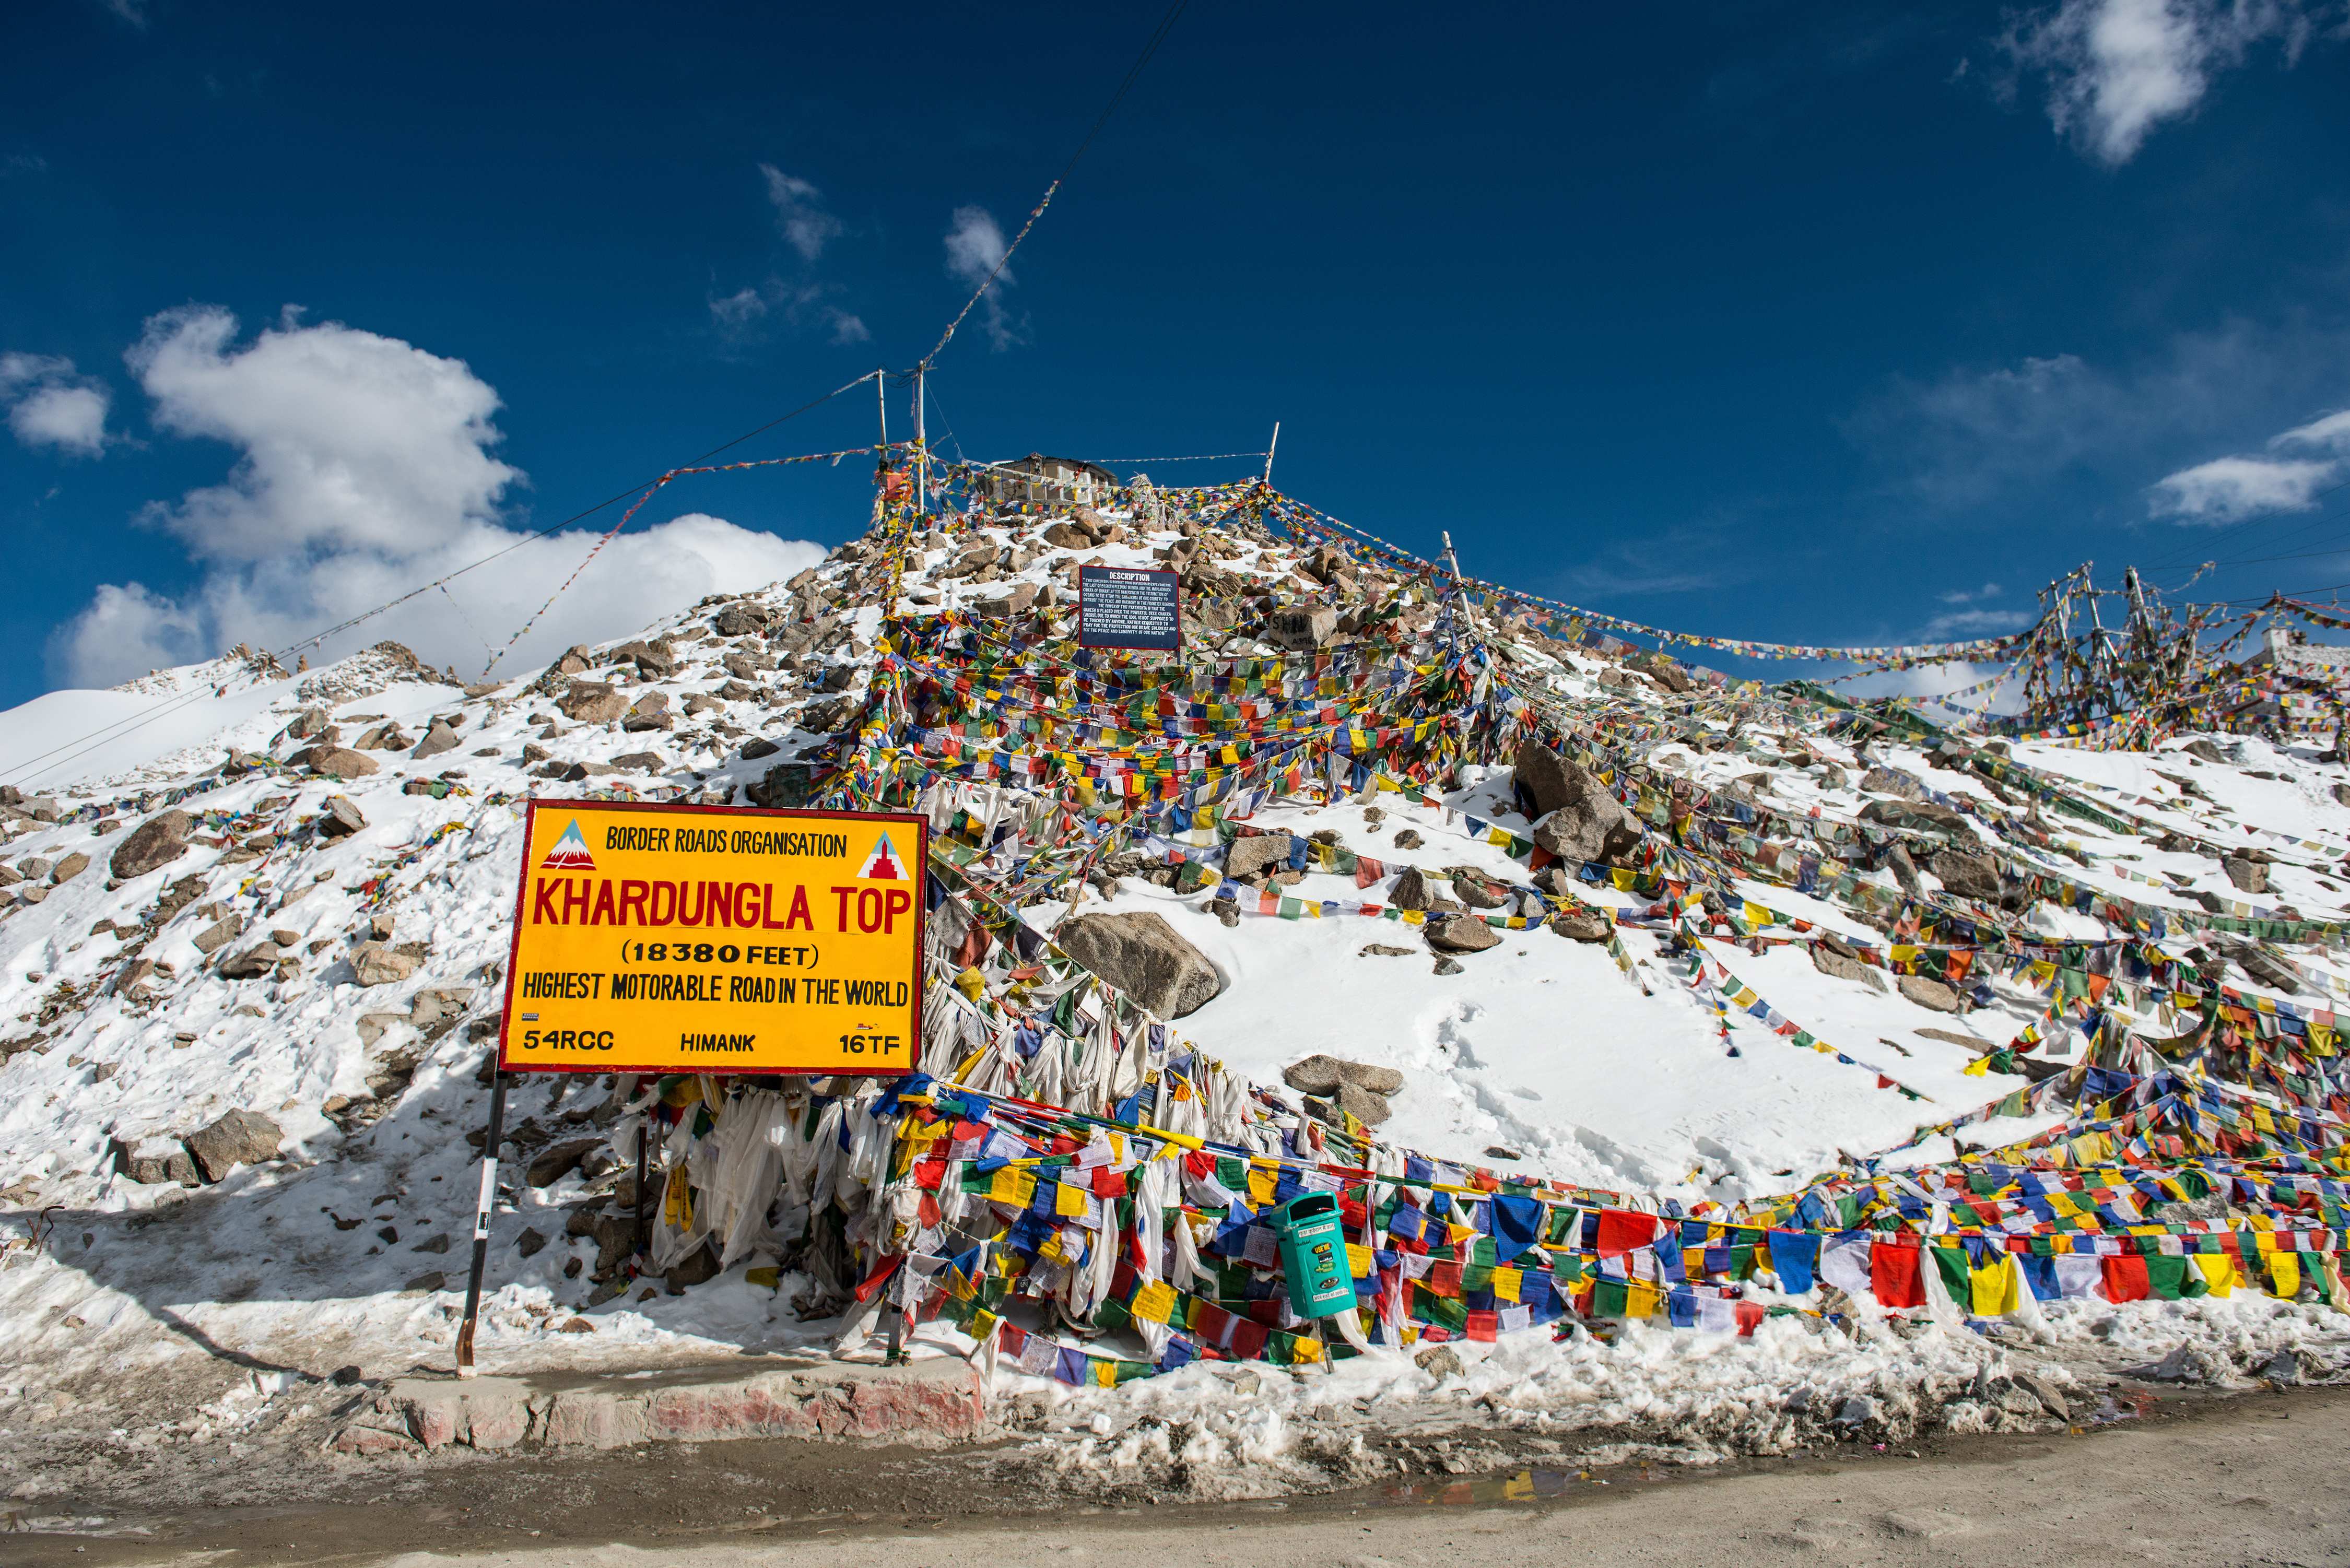 The avalanche hit the truck carrying 10 persons at 7 am. The pass, Khardung La, is India's highest motorable road.